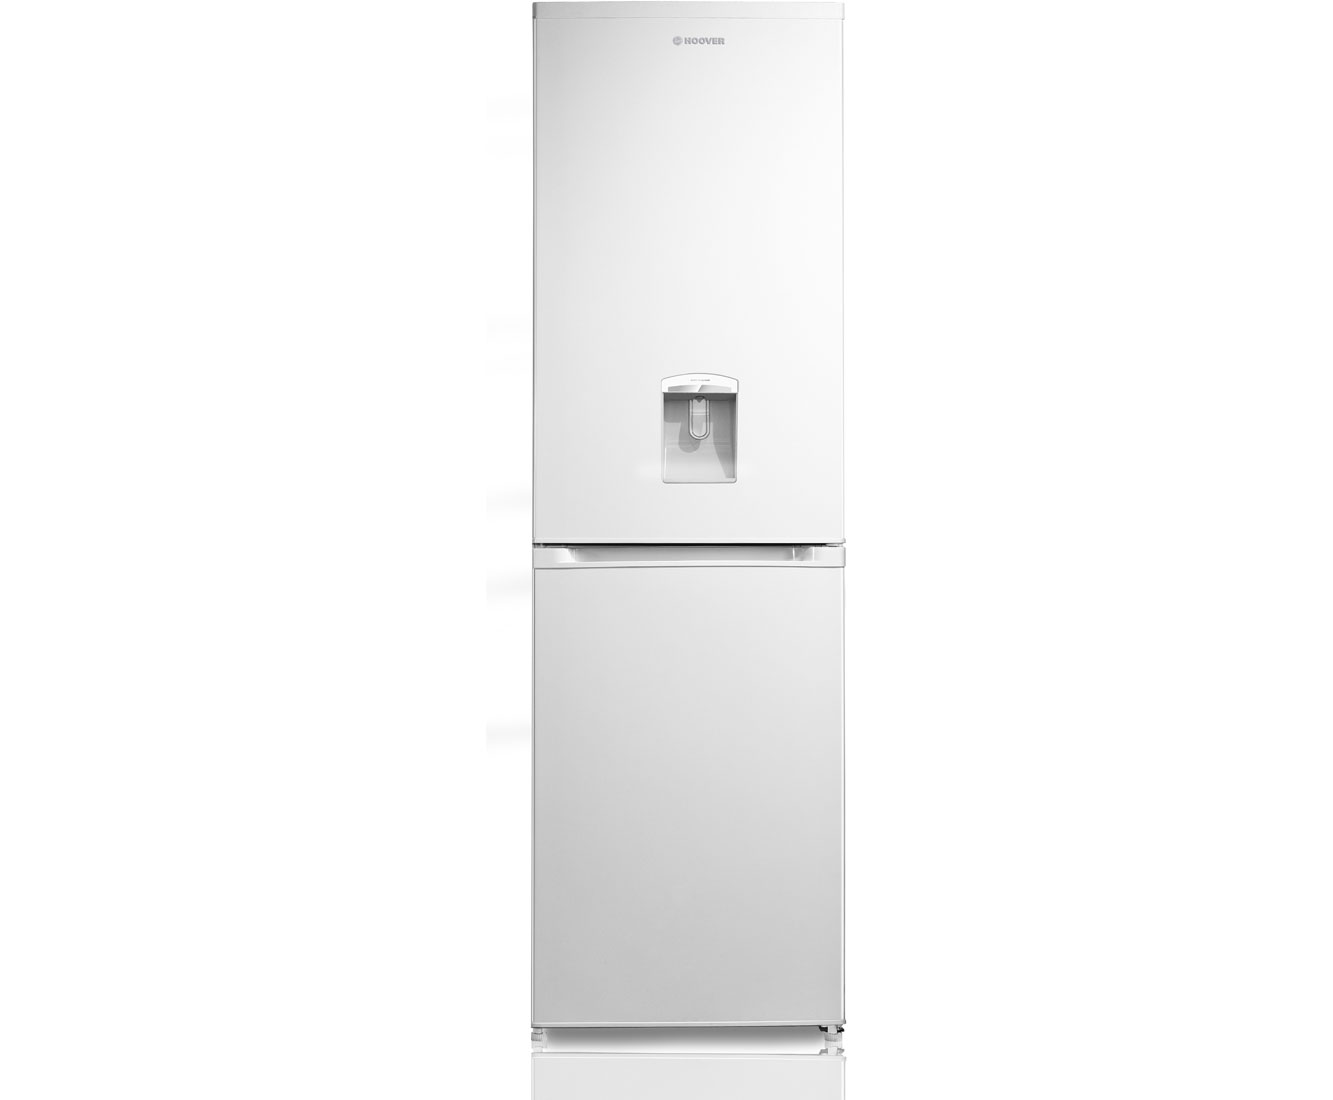 Hoover HVBF5182WWK Free Standing Fridge Freezer Frost Free in White